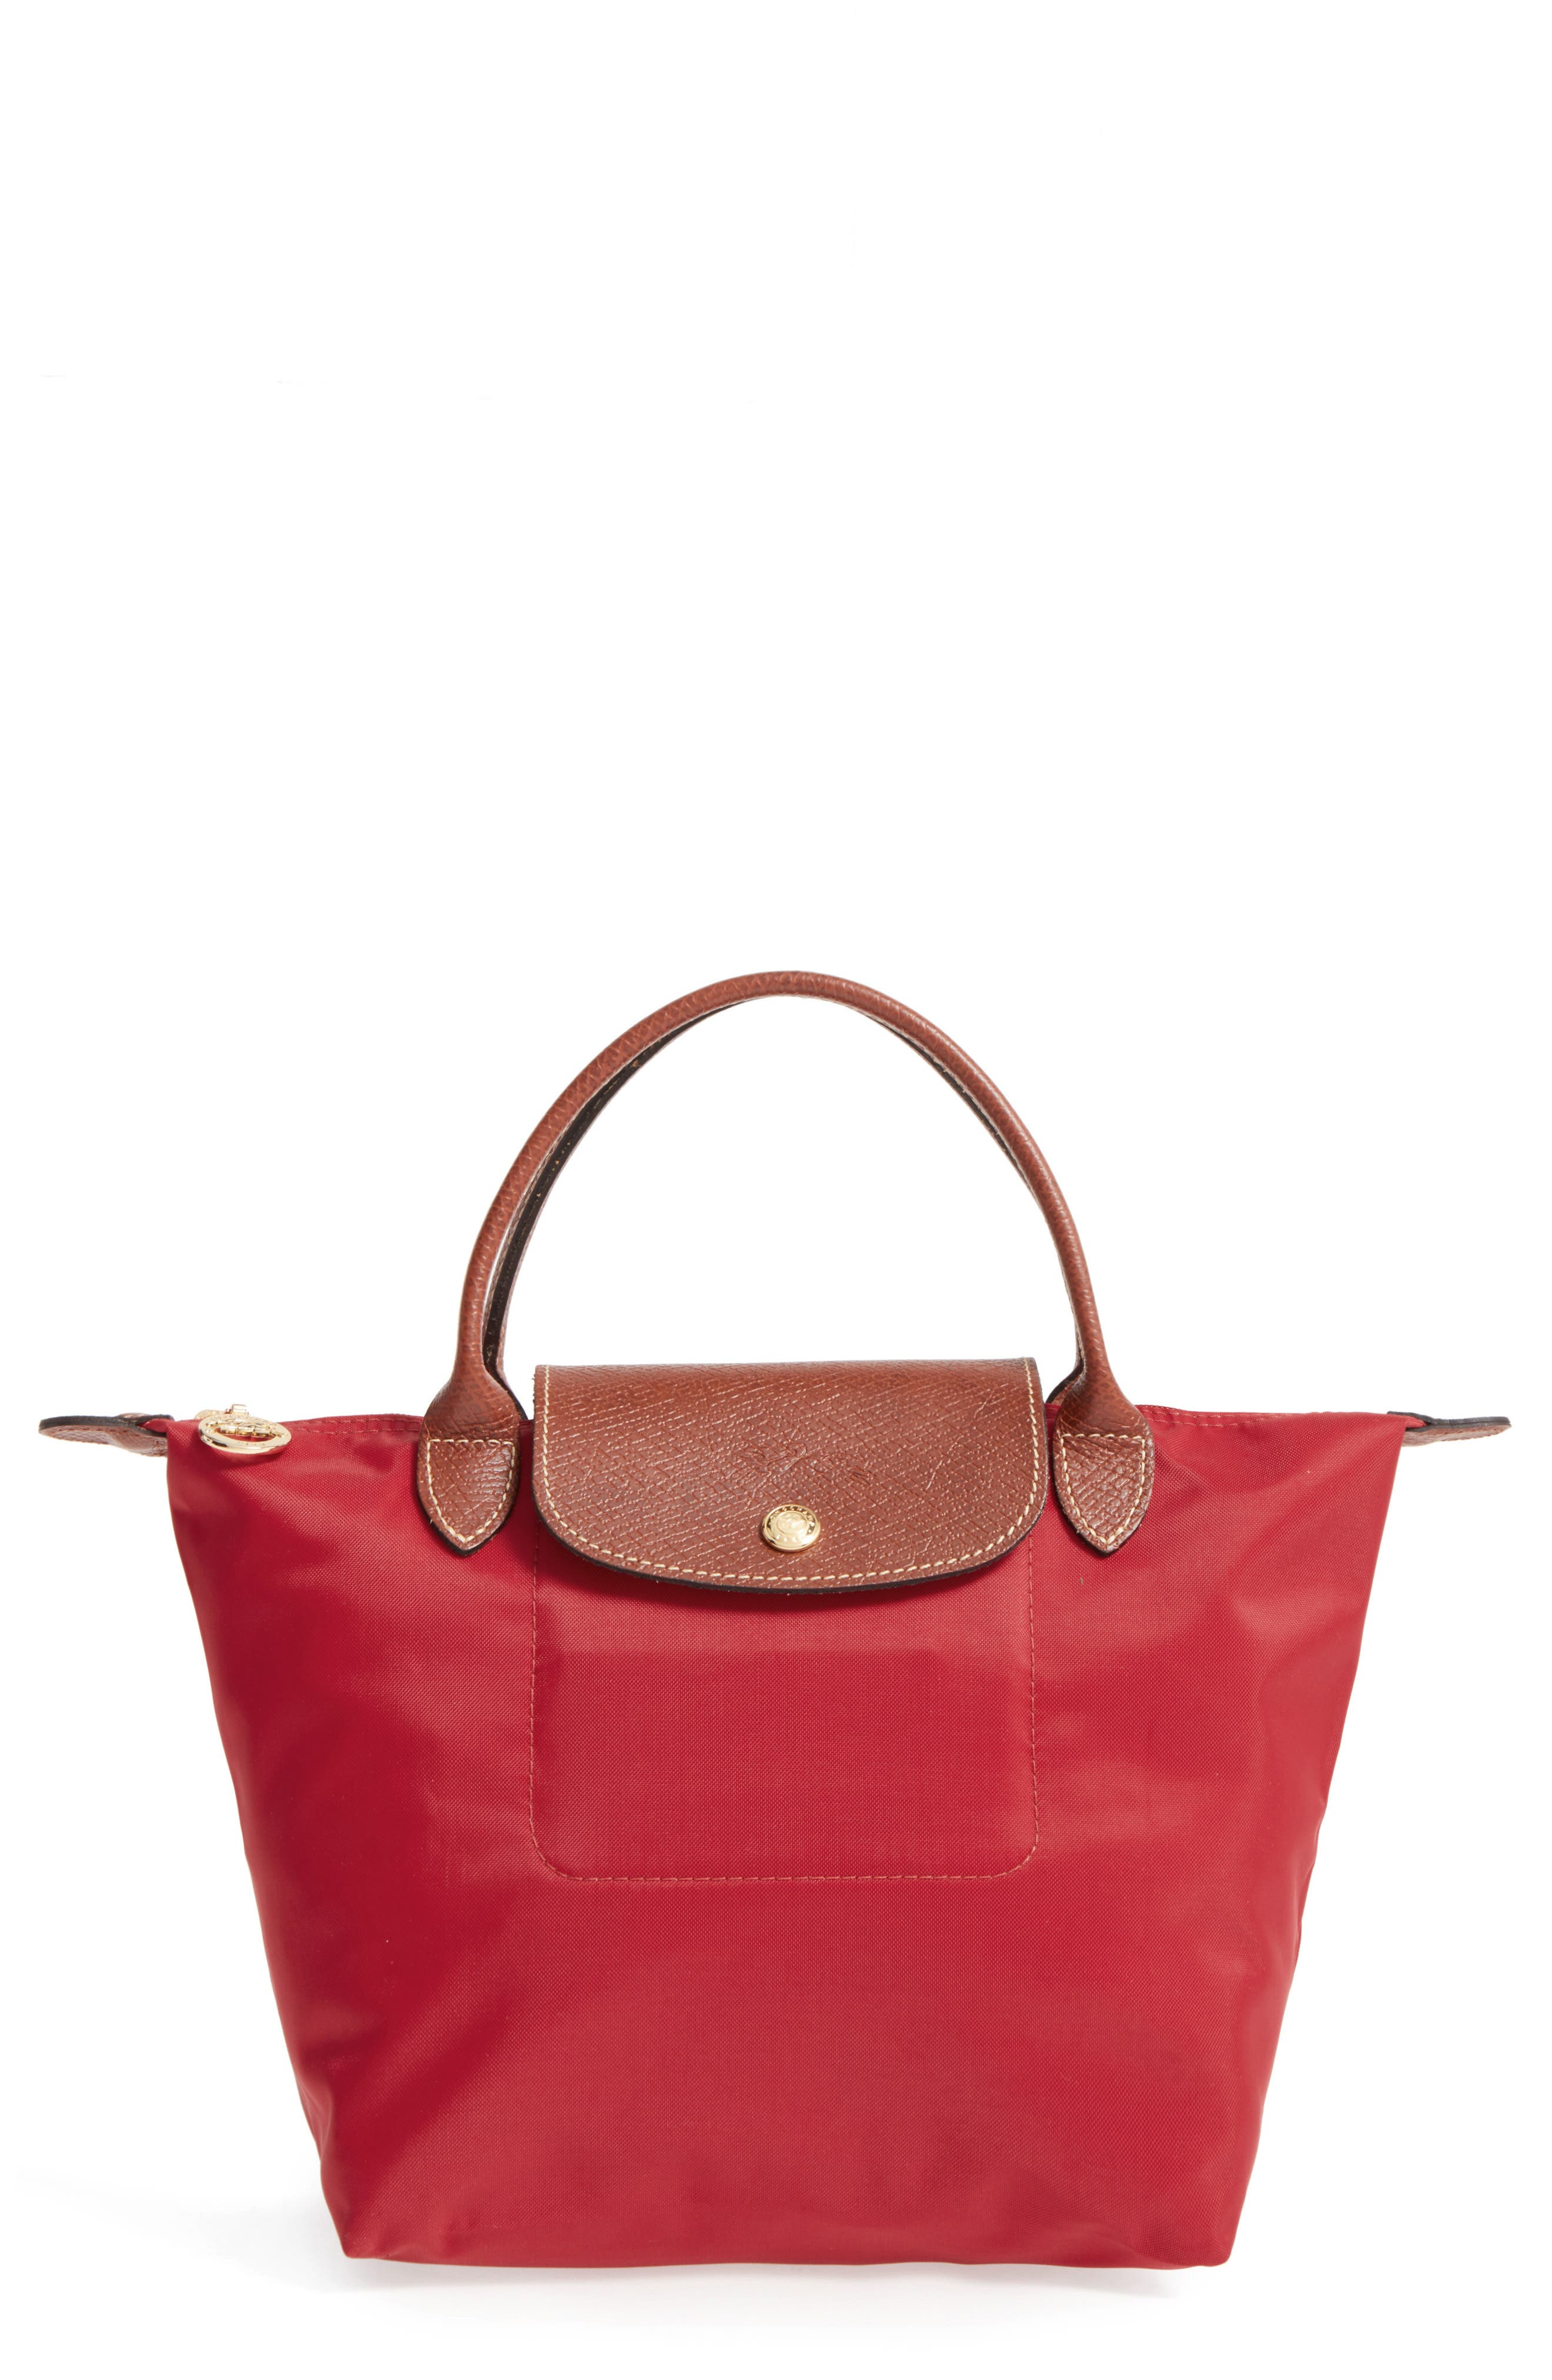 'Small Le Pliage' Top Handle Tote - Red in Deep Red